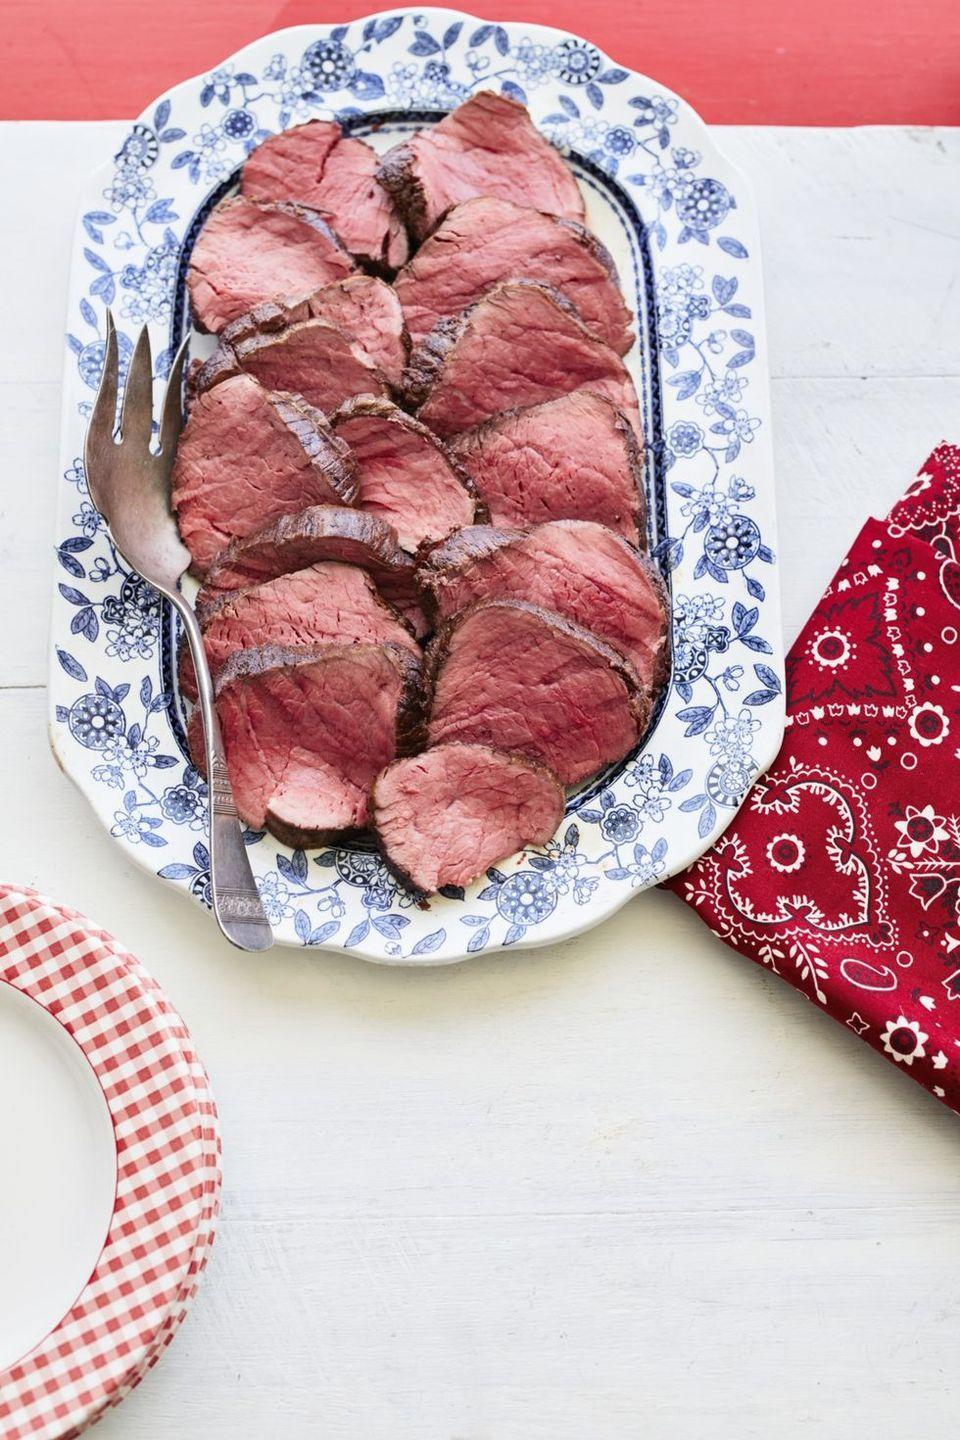 """<p>The key to nailing Ladd Drummond's legendary tenderloin recipe? Melted butter.</p><p><strong><a href=""""https://thepioneerwoman.com/cooking/ladds-grilled-tenderloin/"""" rel=""""nofollow noopener"""" target=""""_blank"""" data-ylk=""""slk:Get the recipe."""" class=""""link rapid-noclick-resp"""">Get the recipe.</a></strong></p><p><strong><strong><strong><strong><a class=""""link rapid-noclick-resp"""" href=""""https://go.redirectingat.com?id=74968X1596630&url=https%3A%2F%2Fwww.walmart.com%2Fip%2FPioneer-Woman-Slotted-Turner%2F910200136&sref=https%3A%2F%2Fwww.thepioneerwoman.com%2Ffood-cooking%2Fmeals-menus%2Fg32188535%2Fbest-grilling-recipes%2F"""" rel=""""nofollow noopener"""" target=""""_blank"""" data-ylk=""""slk:SHOP KITCHEN TOOLS"""">SHOP KITCHEN TOOLS</a></strong></strong></strong></strong></p>"""